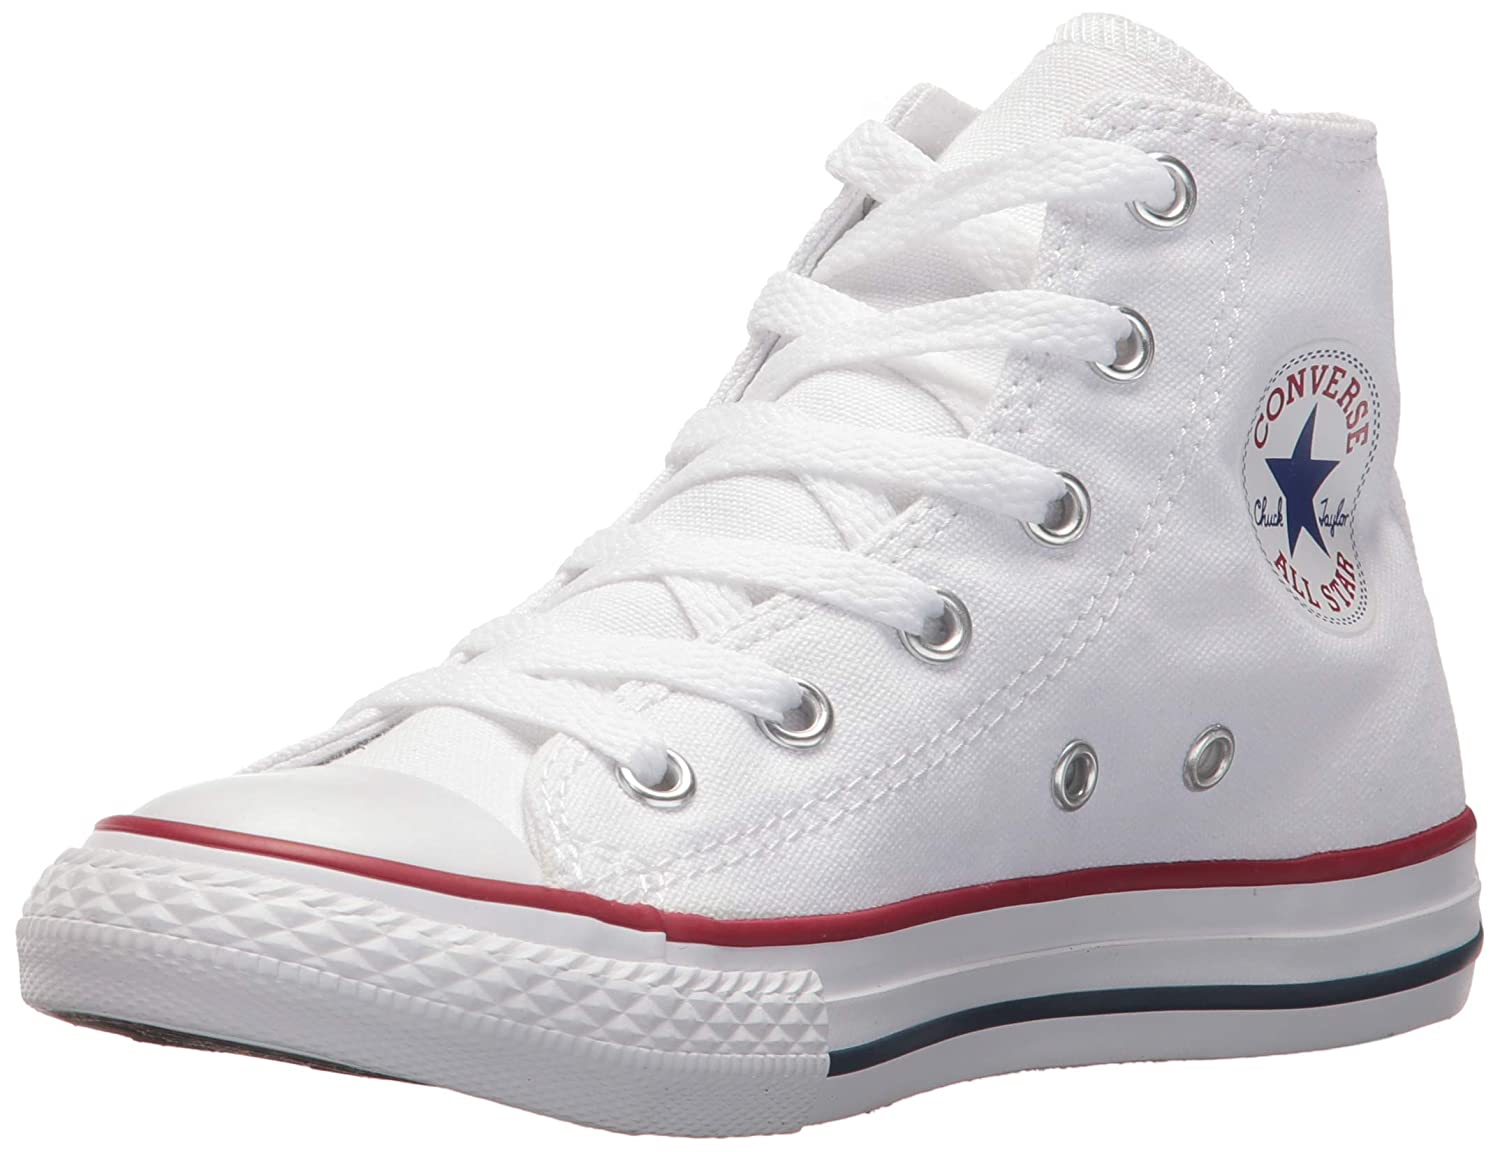 Converse Core Ctas Core adulte Hi, Baskets mode Hi, mixte adulte a044a98 - fast-weightloss-diet.space